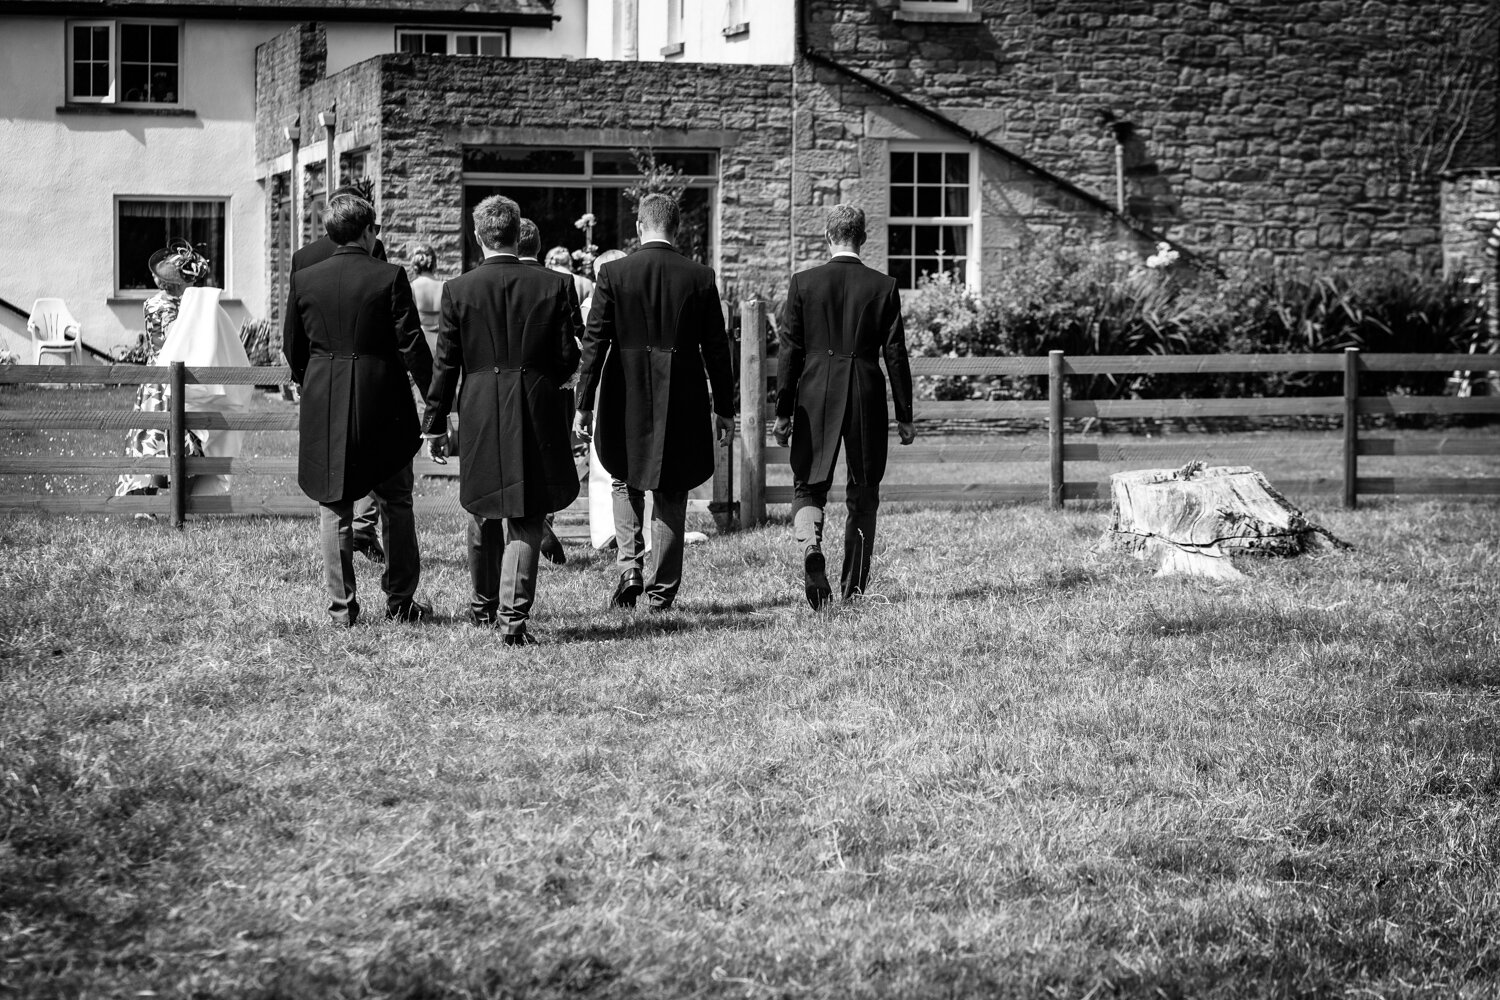 Groom and groomsmen walking away